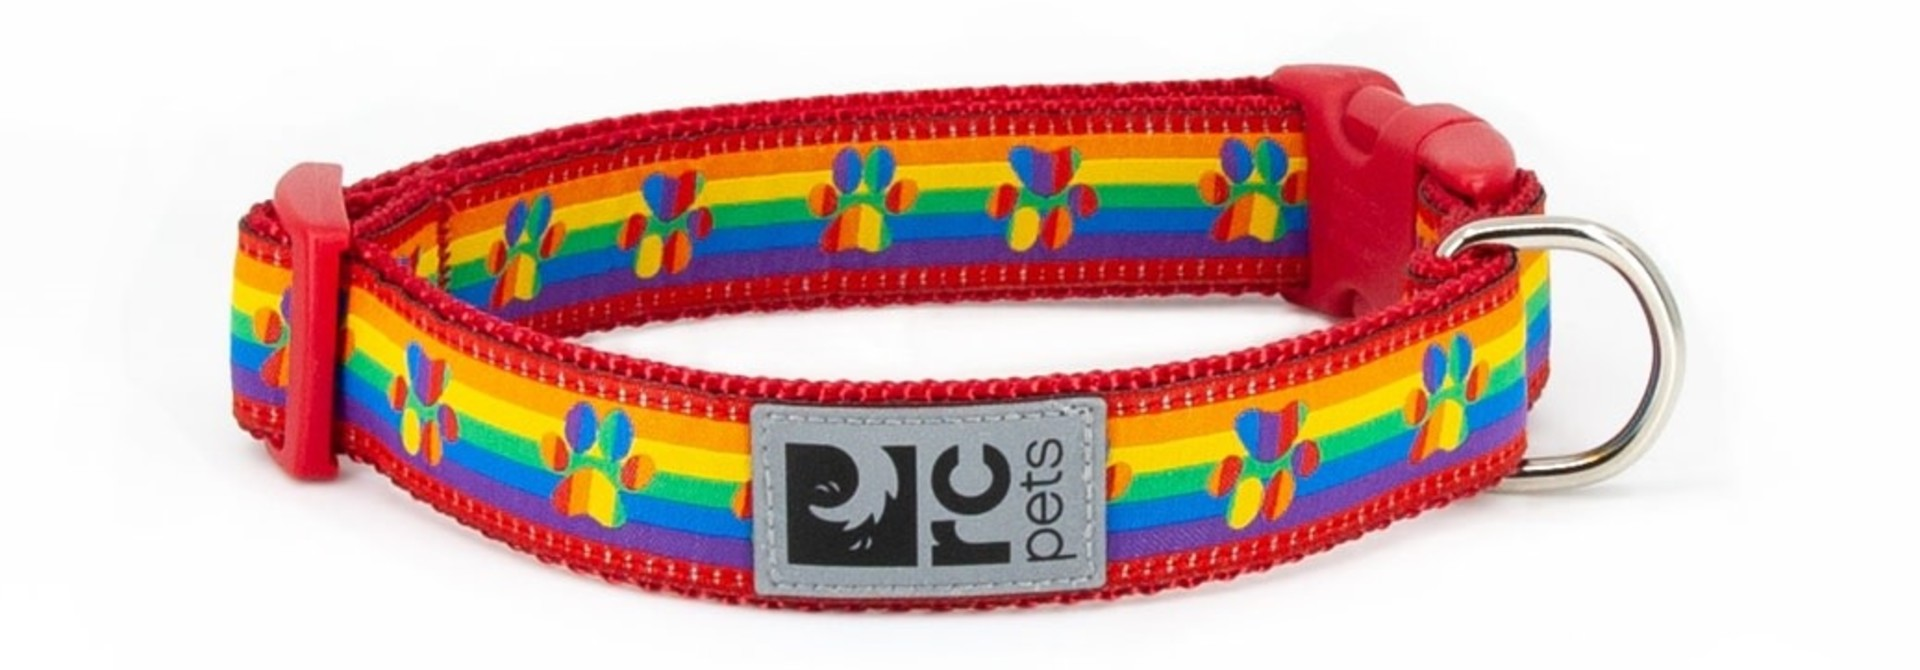 Clip Collar - Rainbow Paws